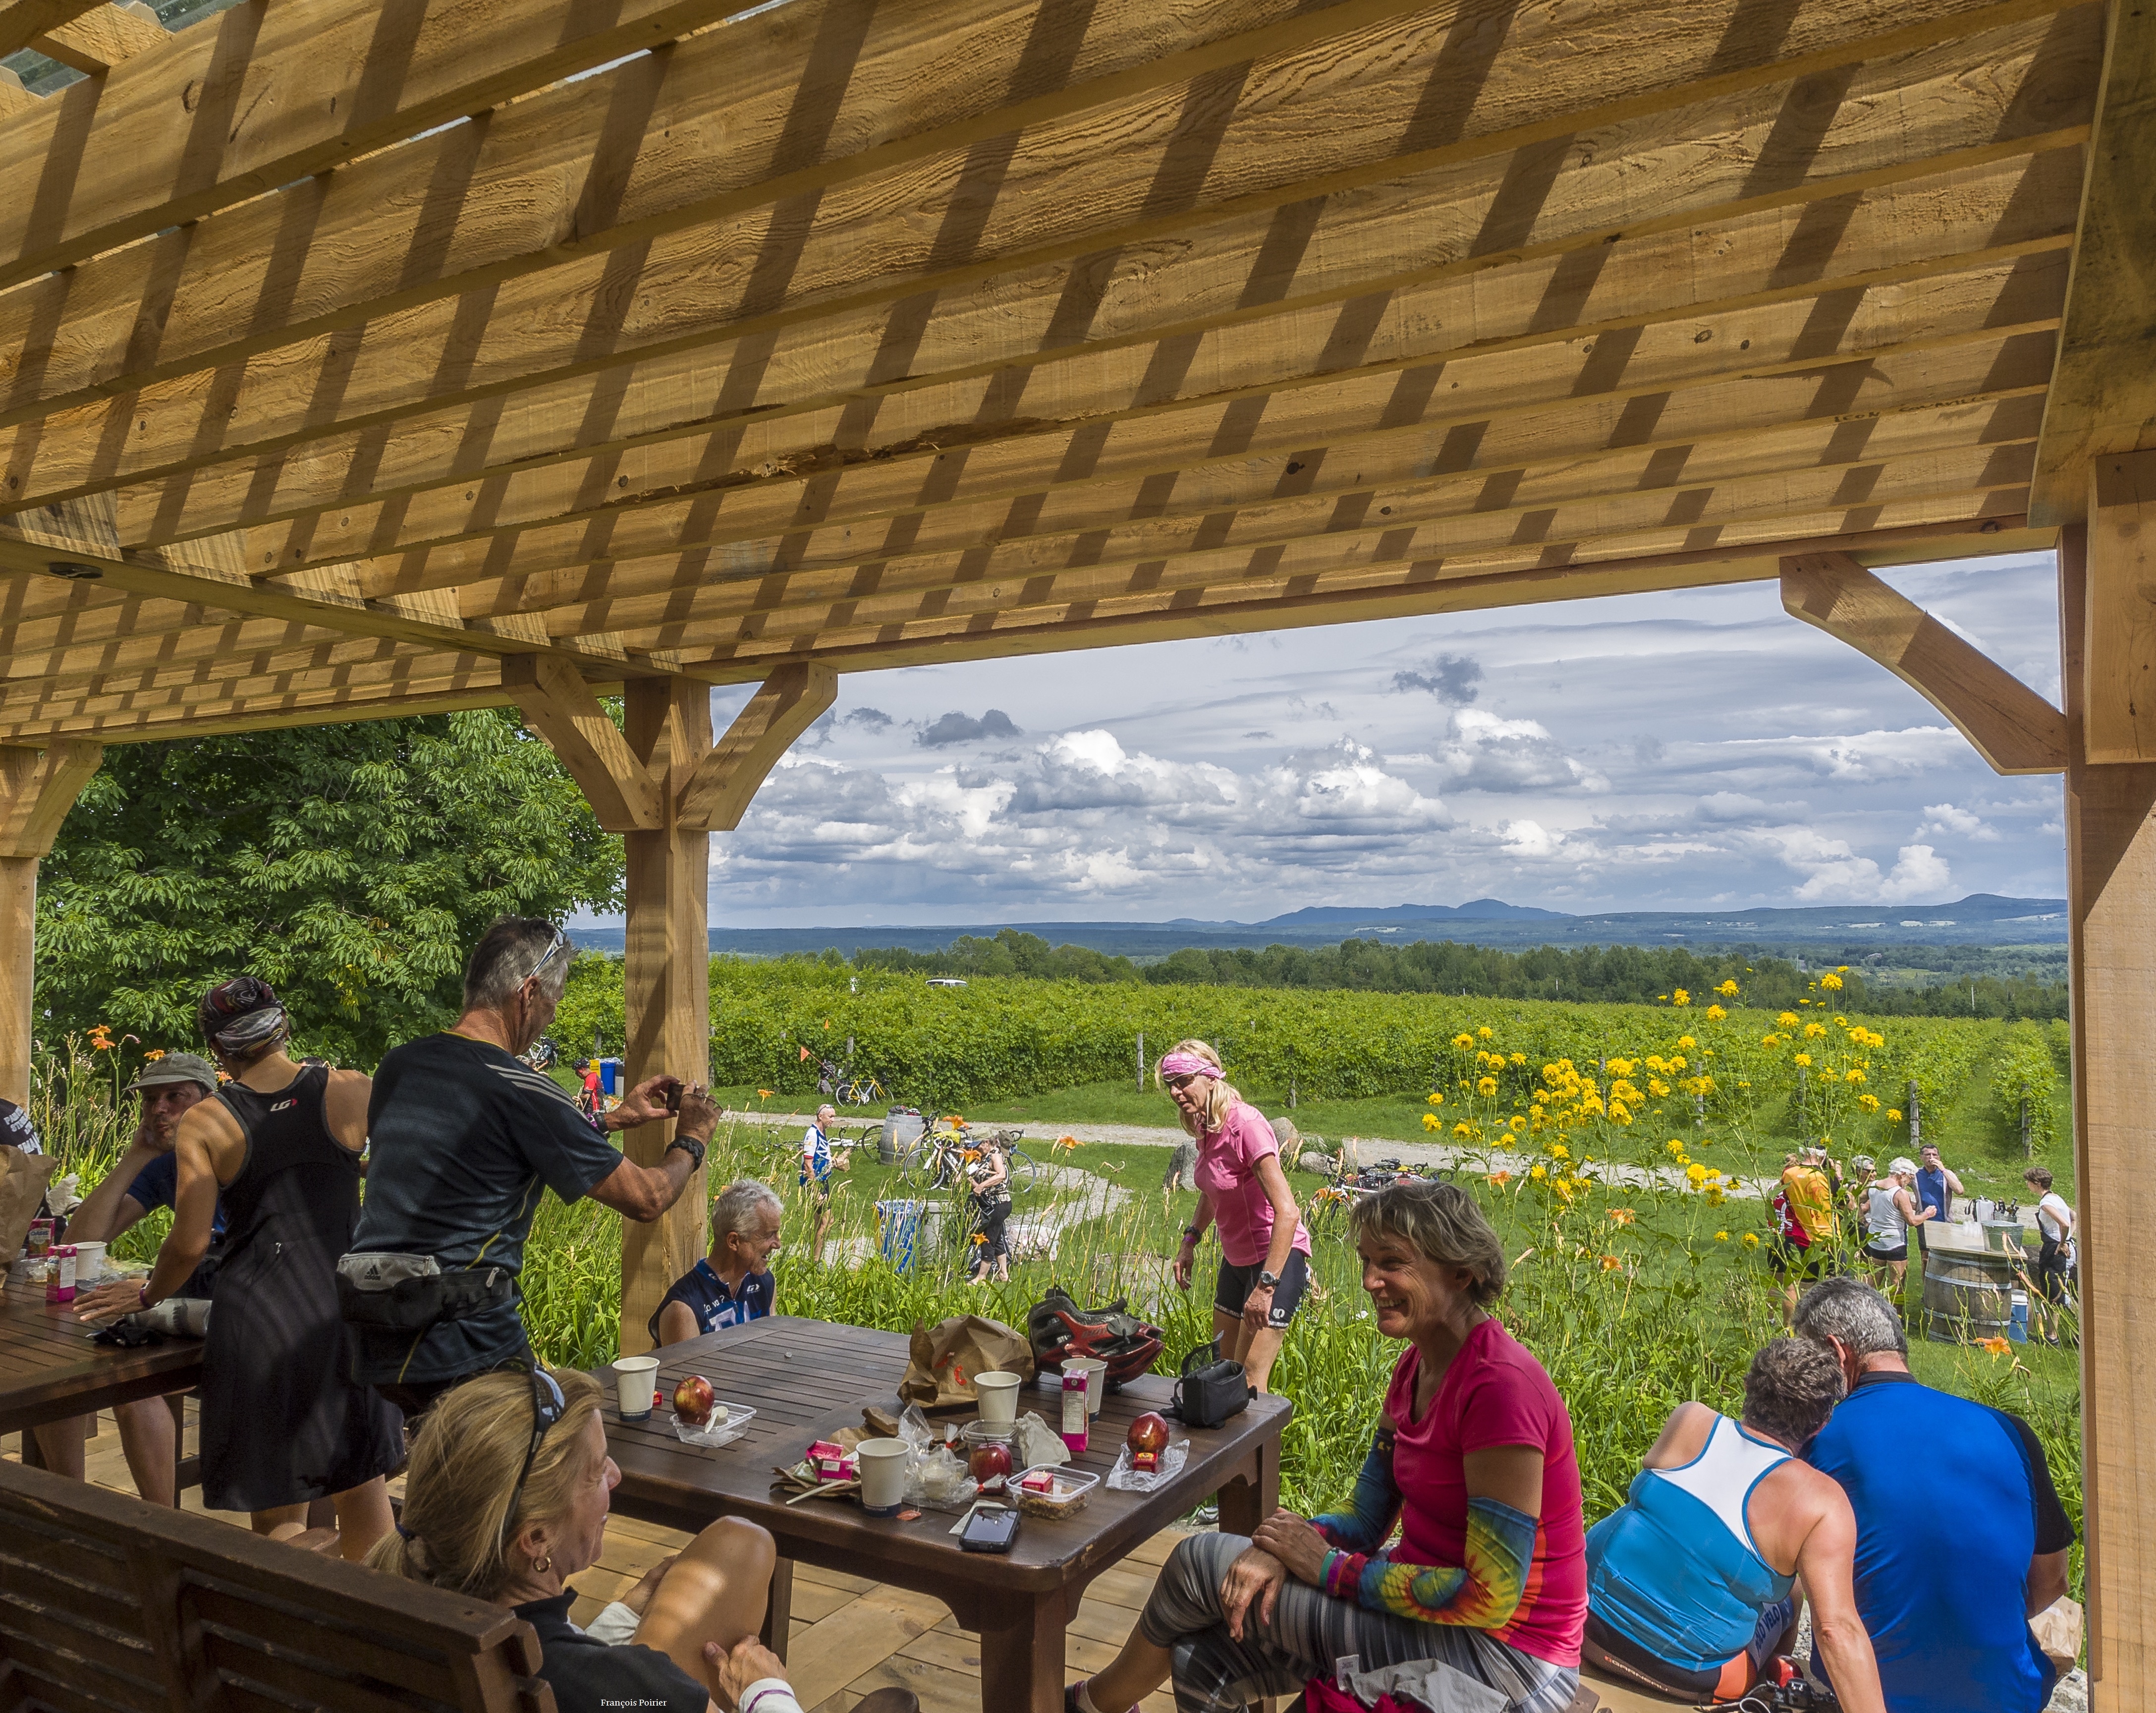 Great Summer Ideas From The Team At Tourism Eastern Townships - 7 things to see and do in quebecs eastern townships